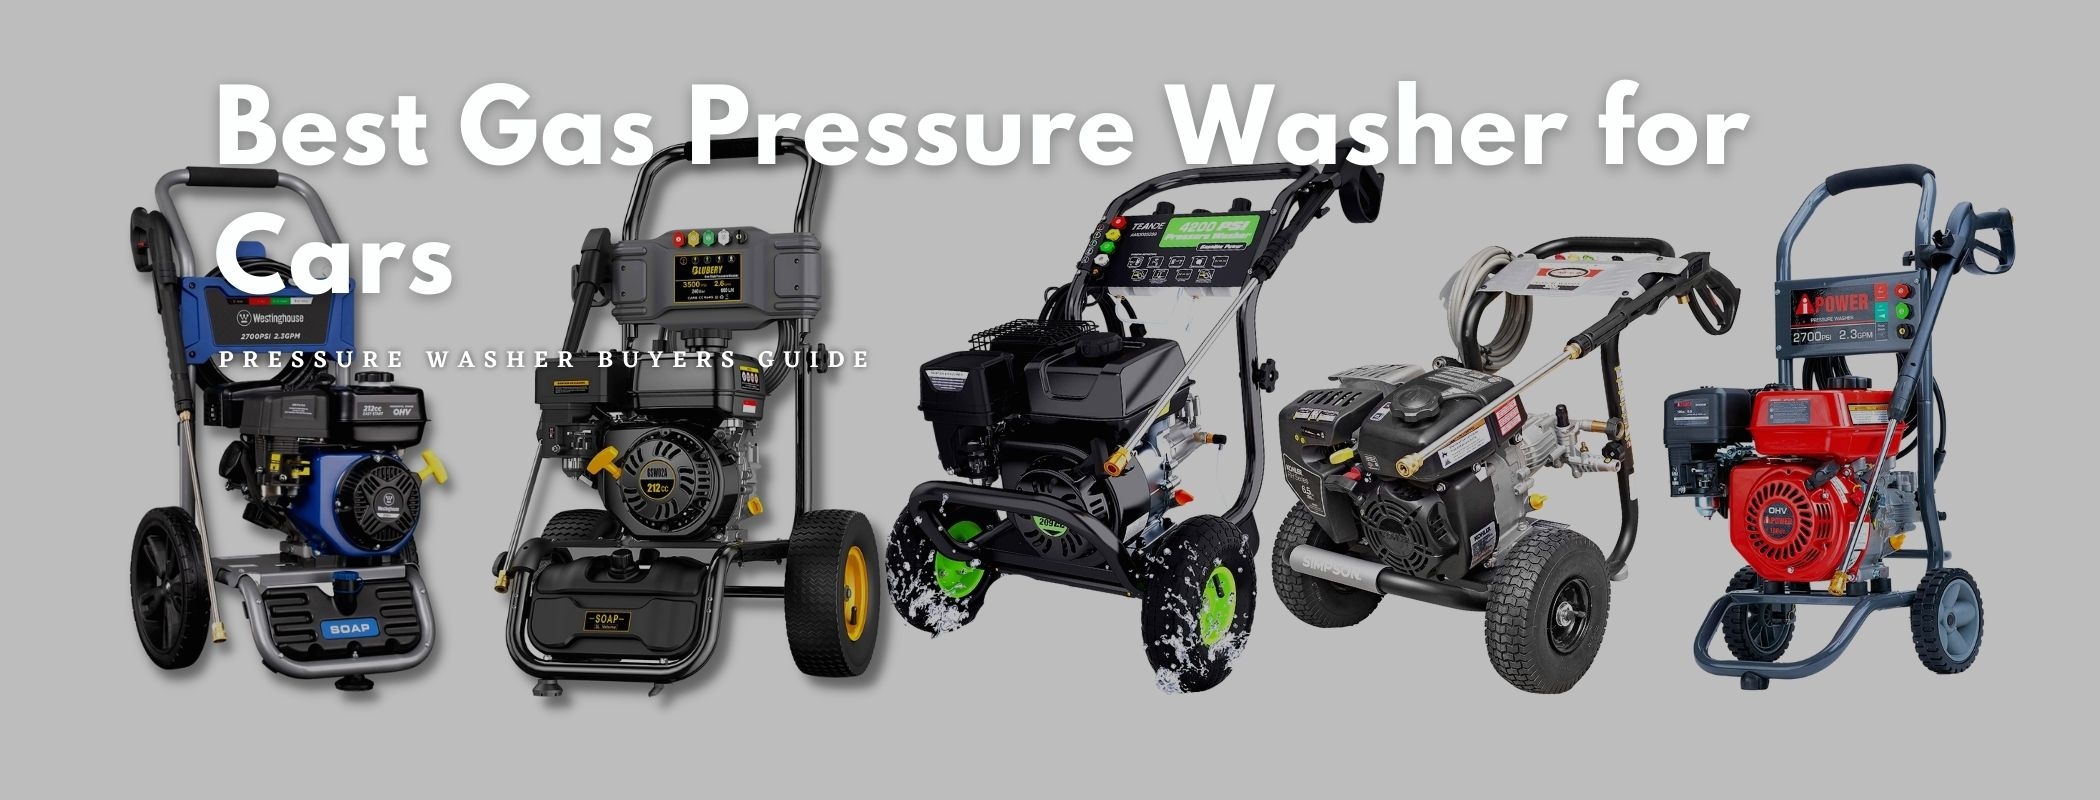 Best Gas Pressure Washer for Cars – Our Top Five Picks